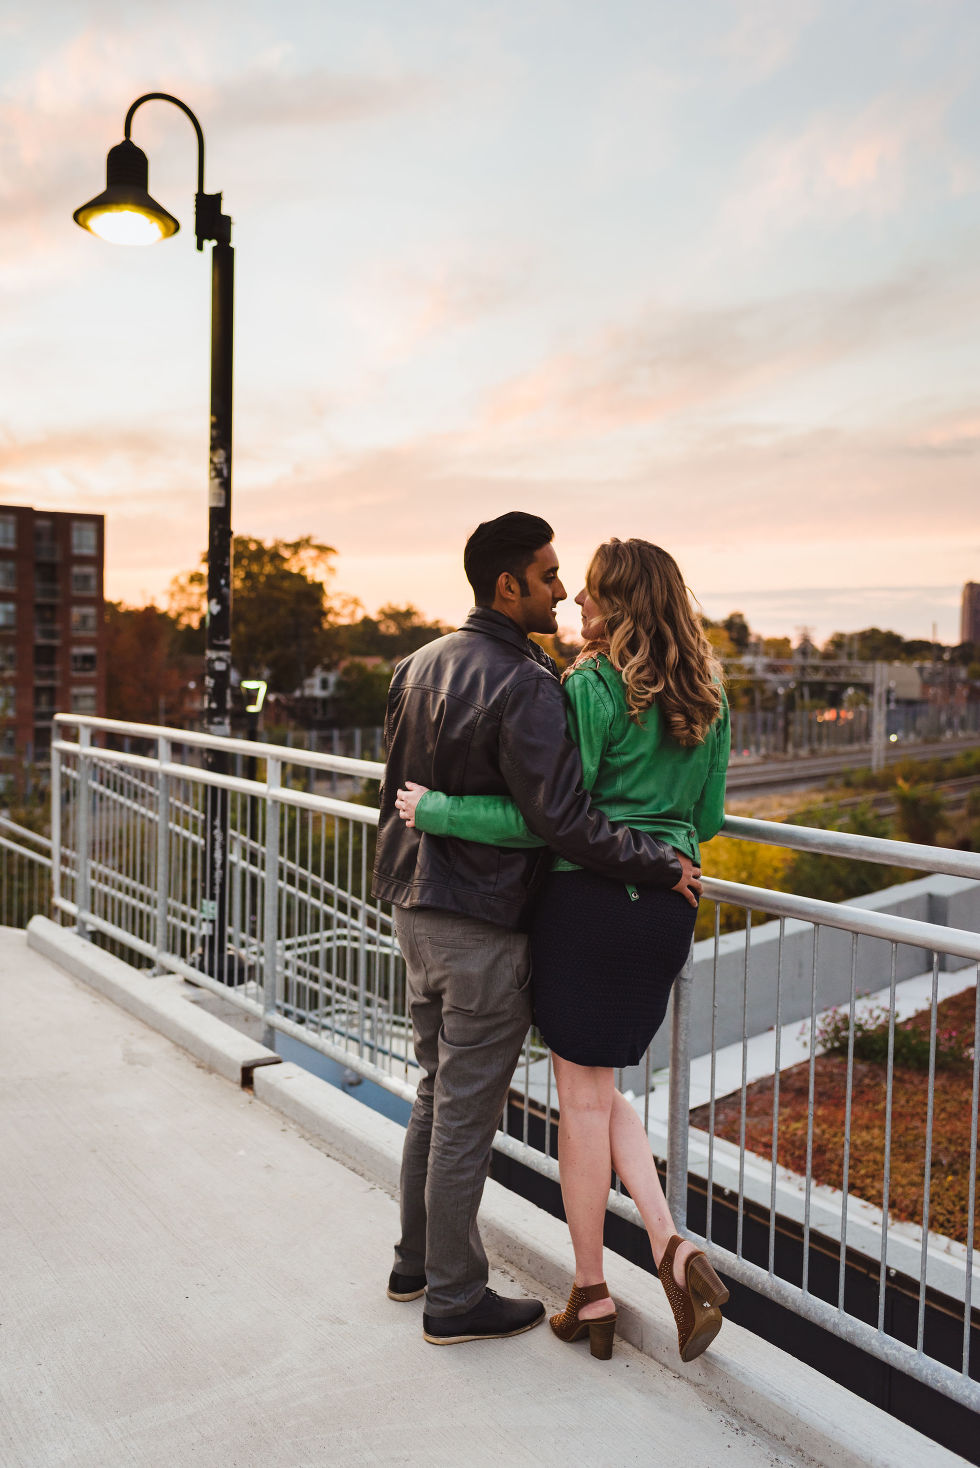 man and woman embracing each other on platform overlooking train tracks in the Junction, Toronto